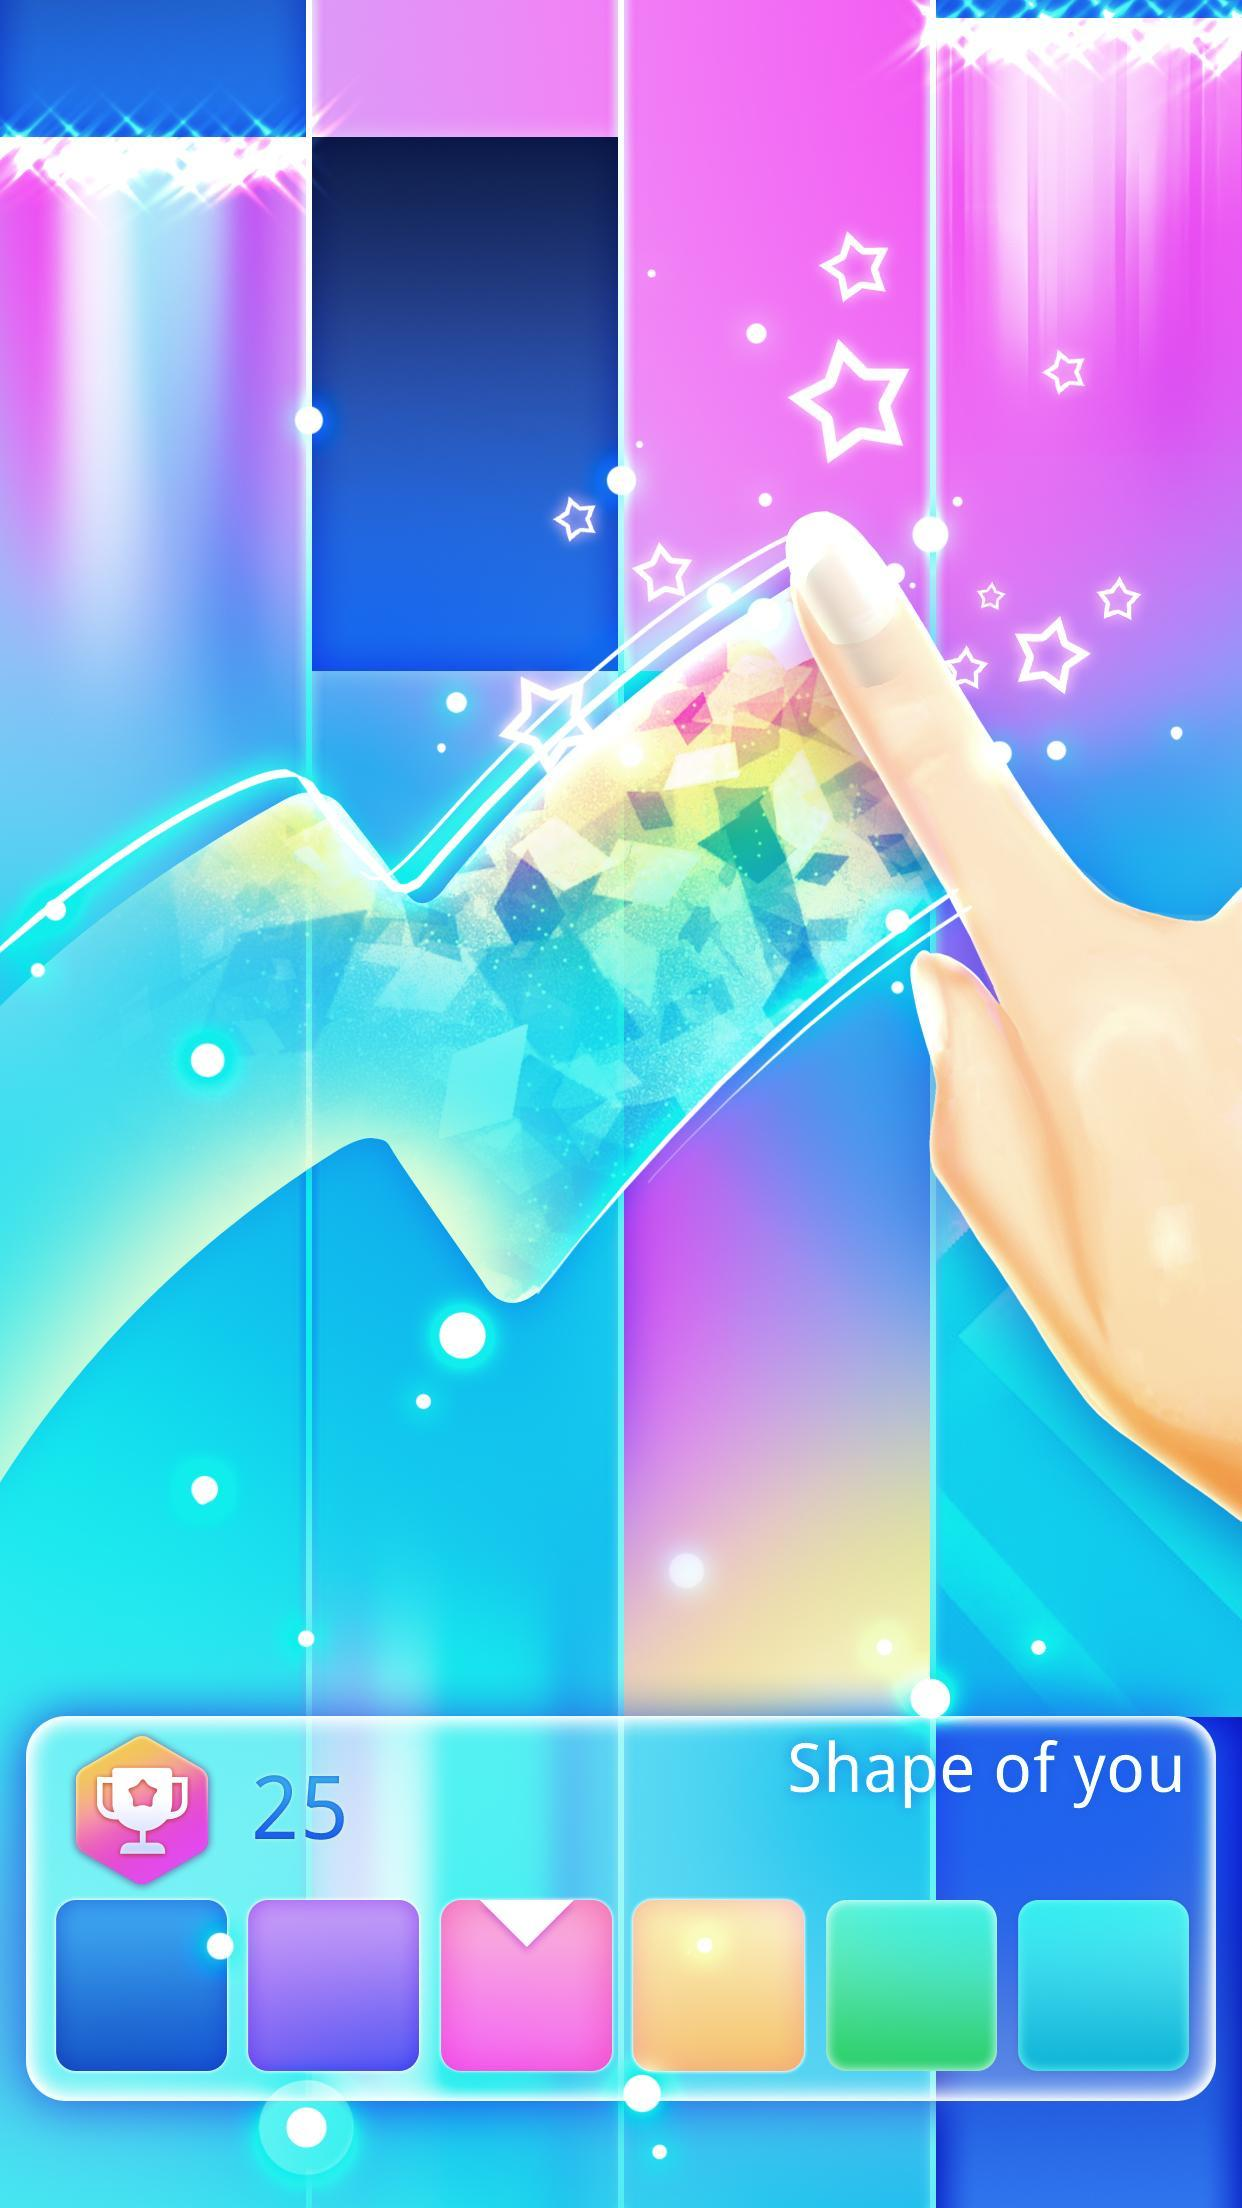 Piano Music Go 2019: Free EDM Piano Games for Android - APK